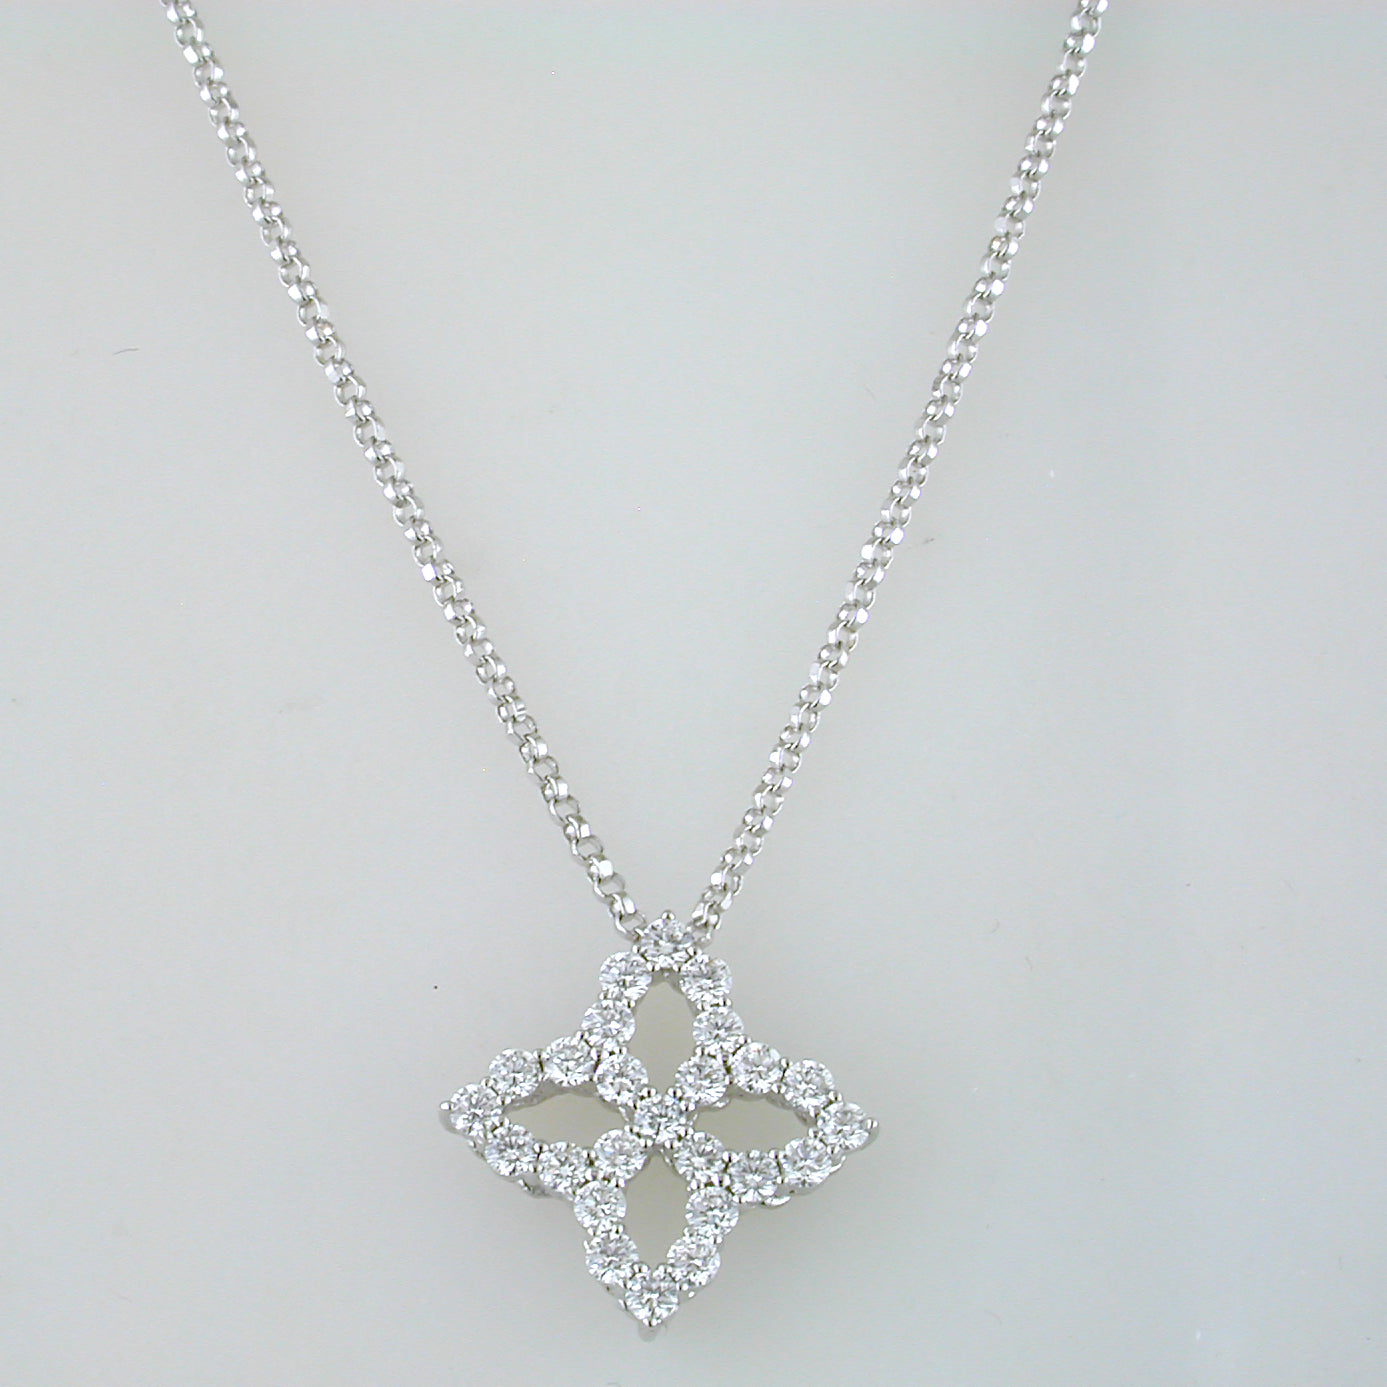 Roberto Coin Princess Flower Necklace Medium Diamond Pendant 18kt